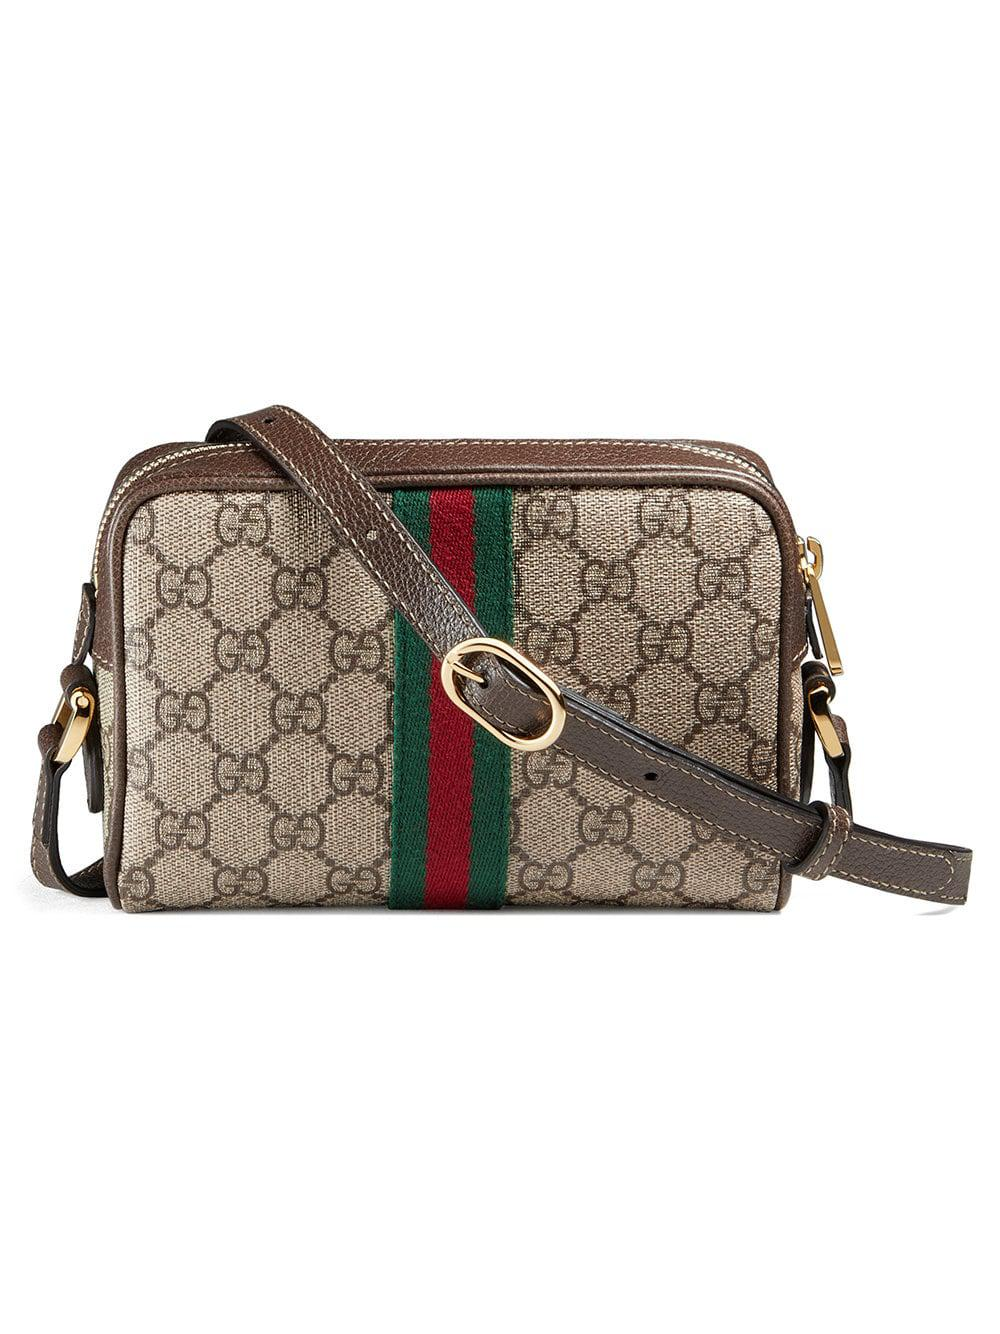 a1a19c20120a Gucci Brown Ophidia GG Supreme Small Belt Bag in Brown - Save 12% - Lyst